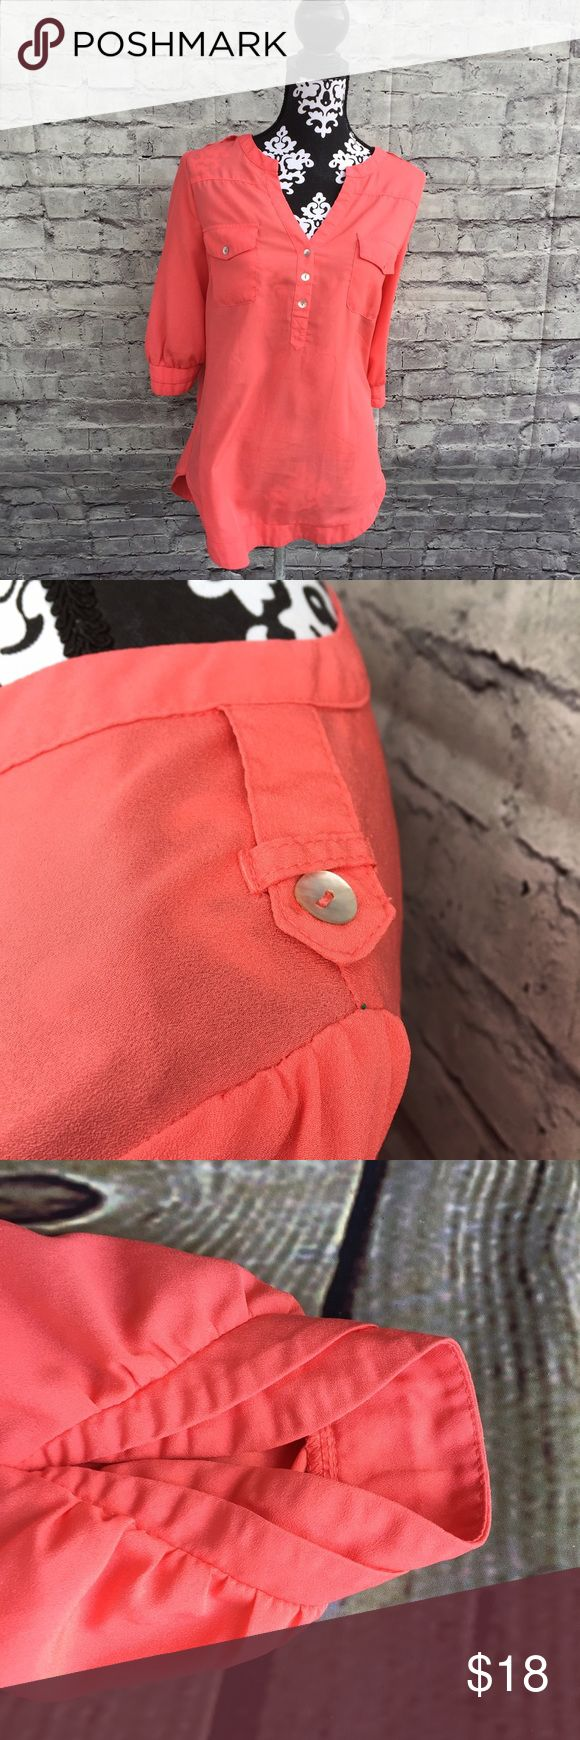 """41Hawthorn Sheer Coral Blouse size M EUC 41Hawthorn for Stitch Fix """"Filbert 3/4 Sleeve Popover Blouse"""" Coral Blouse M. Good preowned condition, no flaws. 41 Hawthorn Tops Button Down Shirts"""